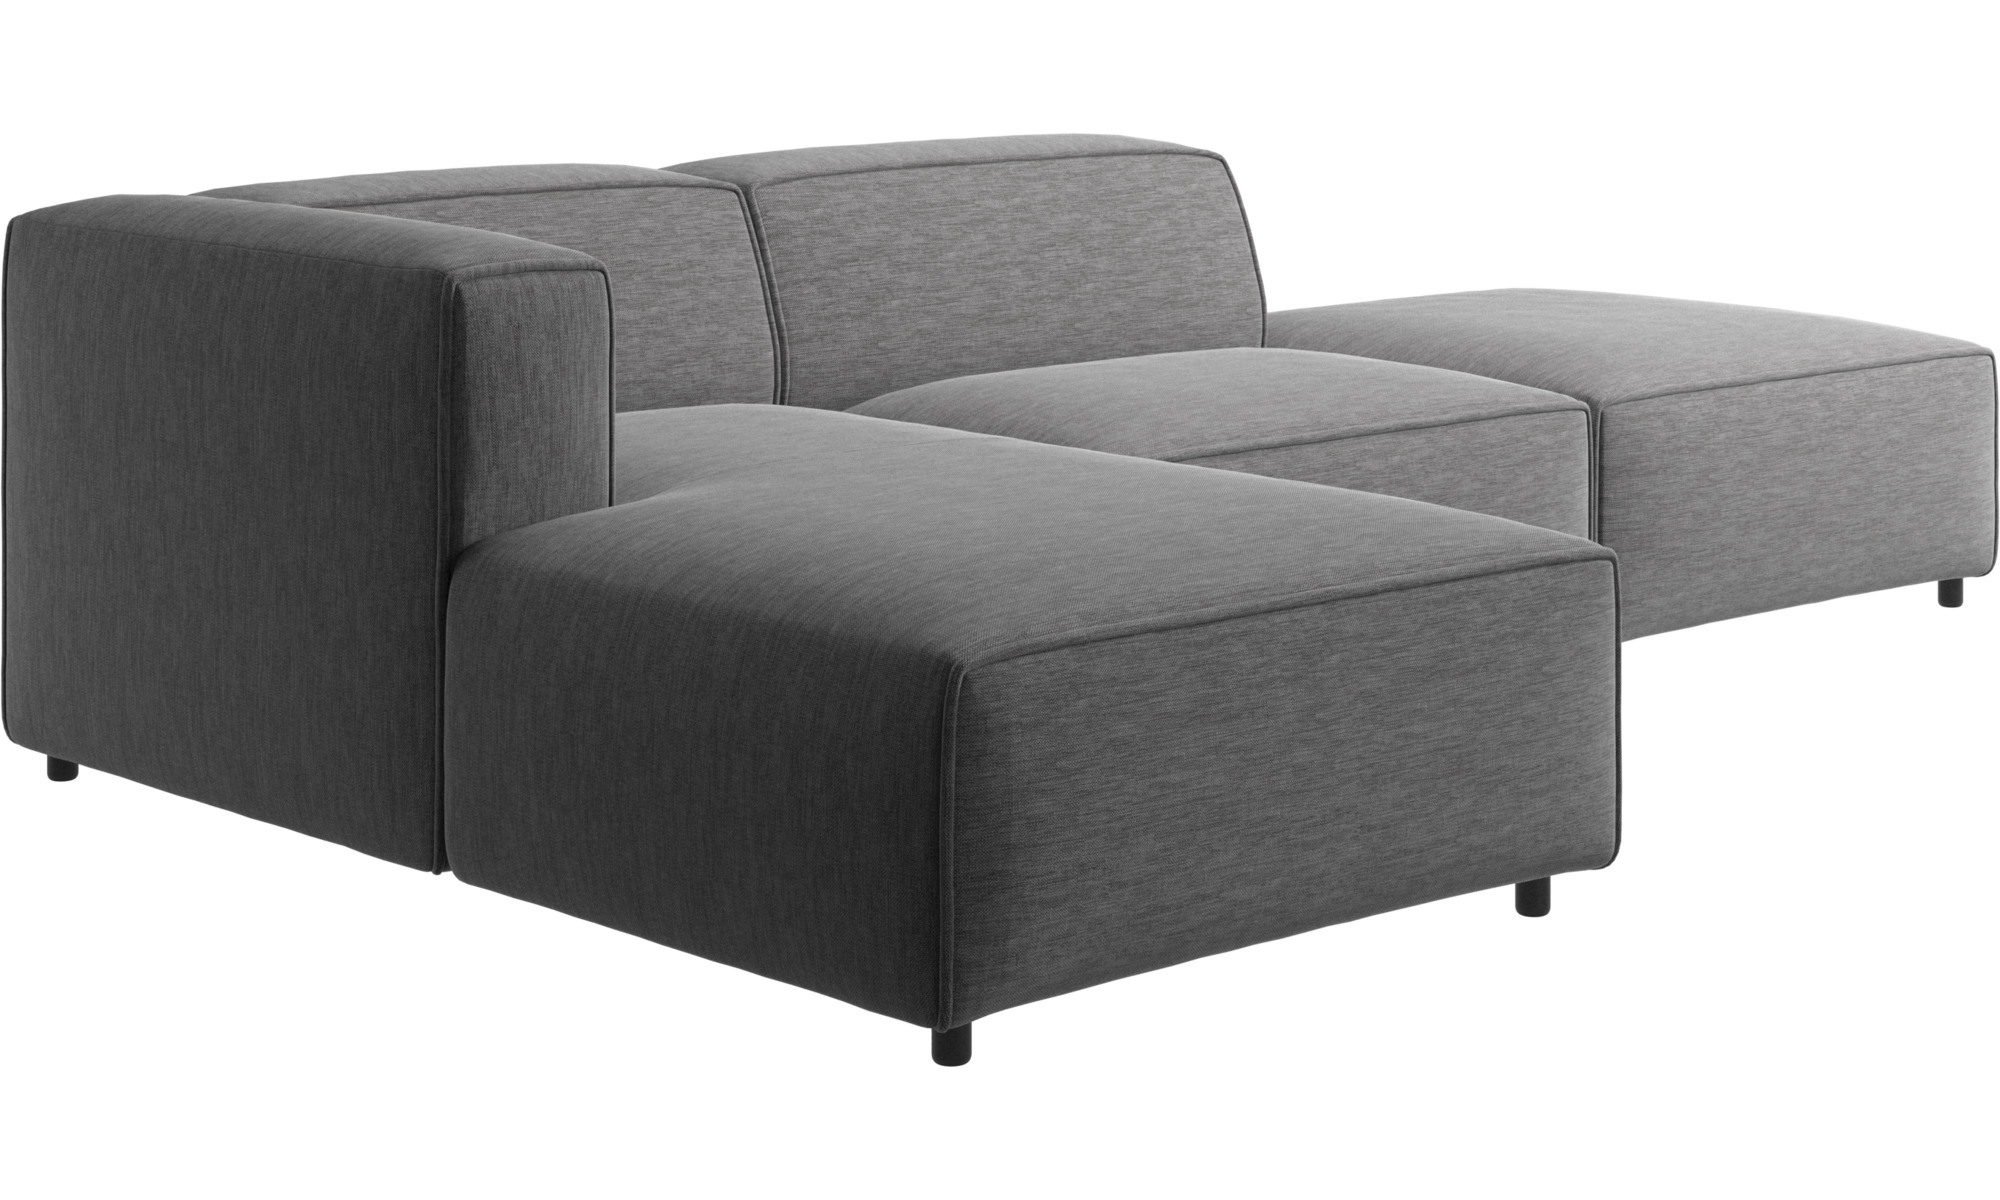 modular sofas carmo sofa with lounging and resting unit boconcept. Black Bedroom Furniture Sets. Home Design Ideas